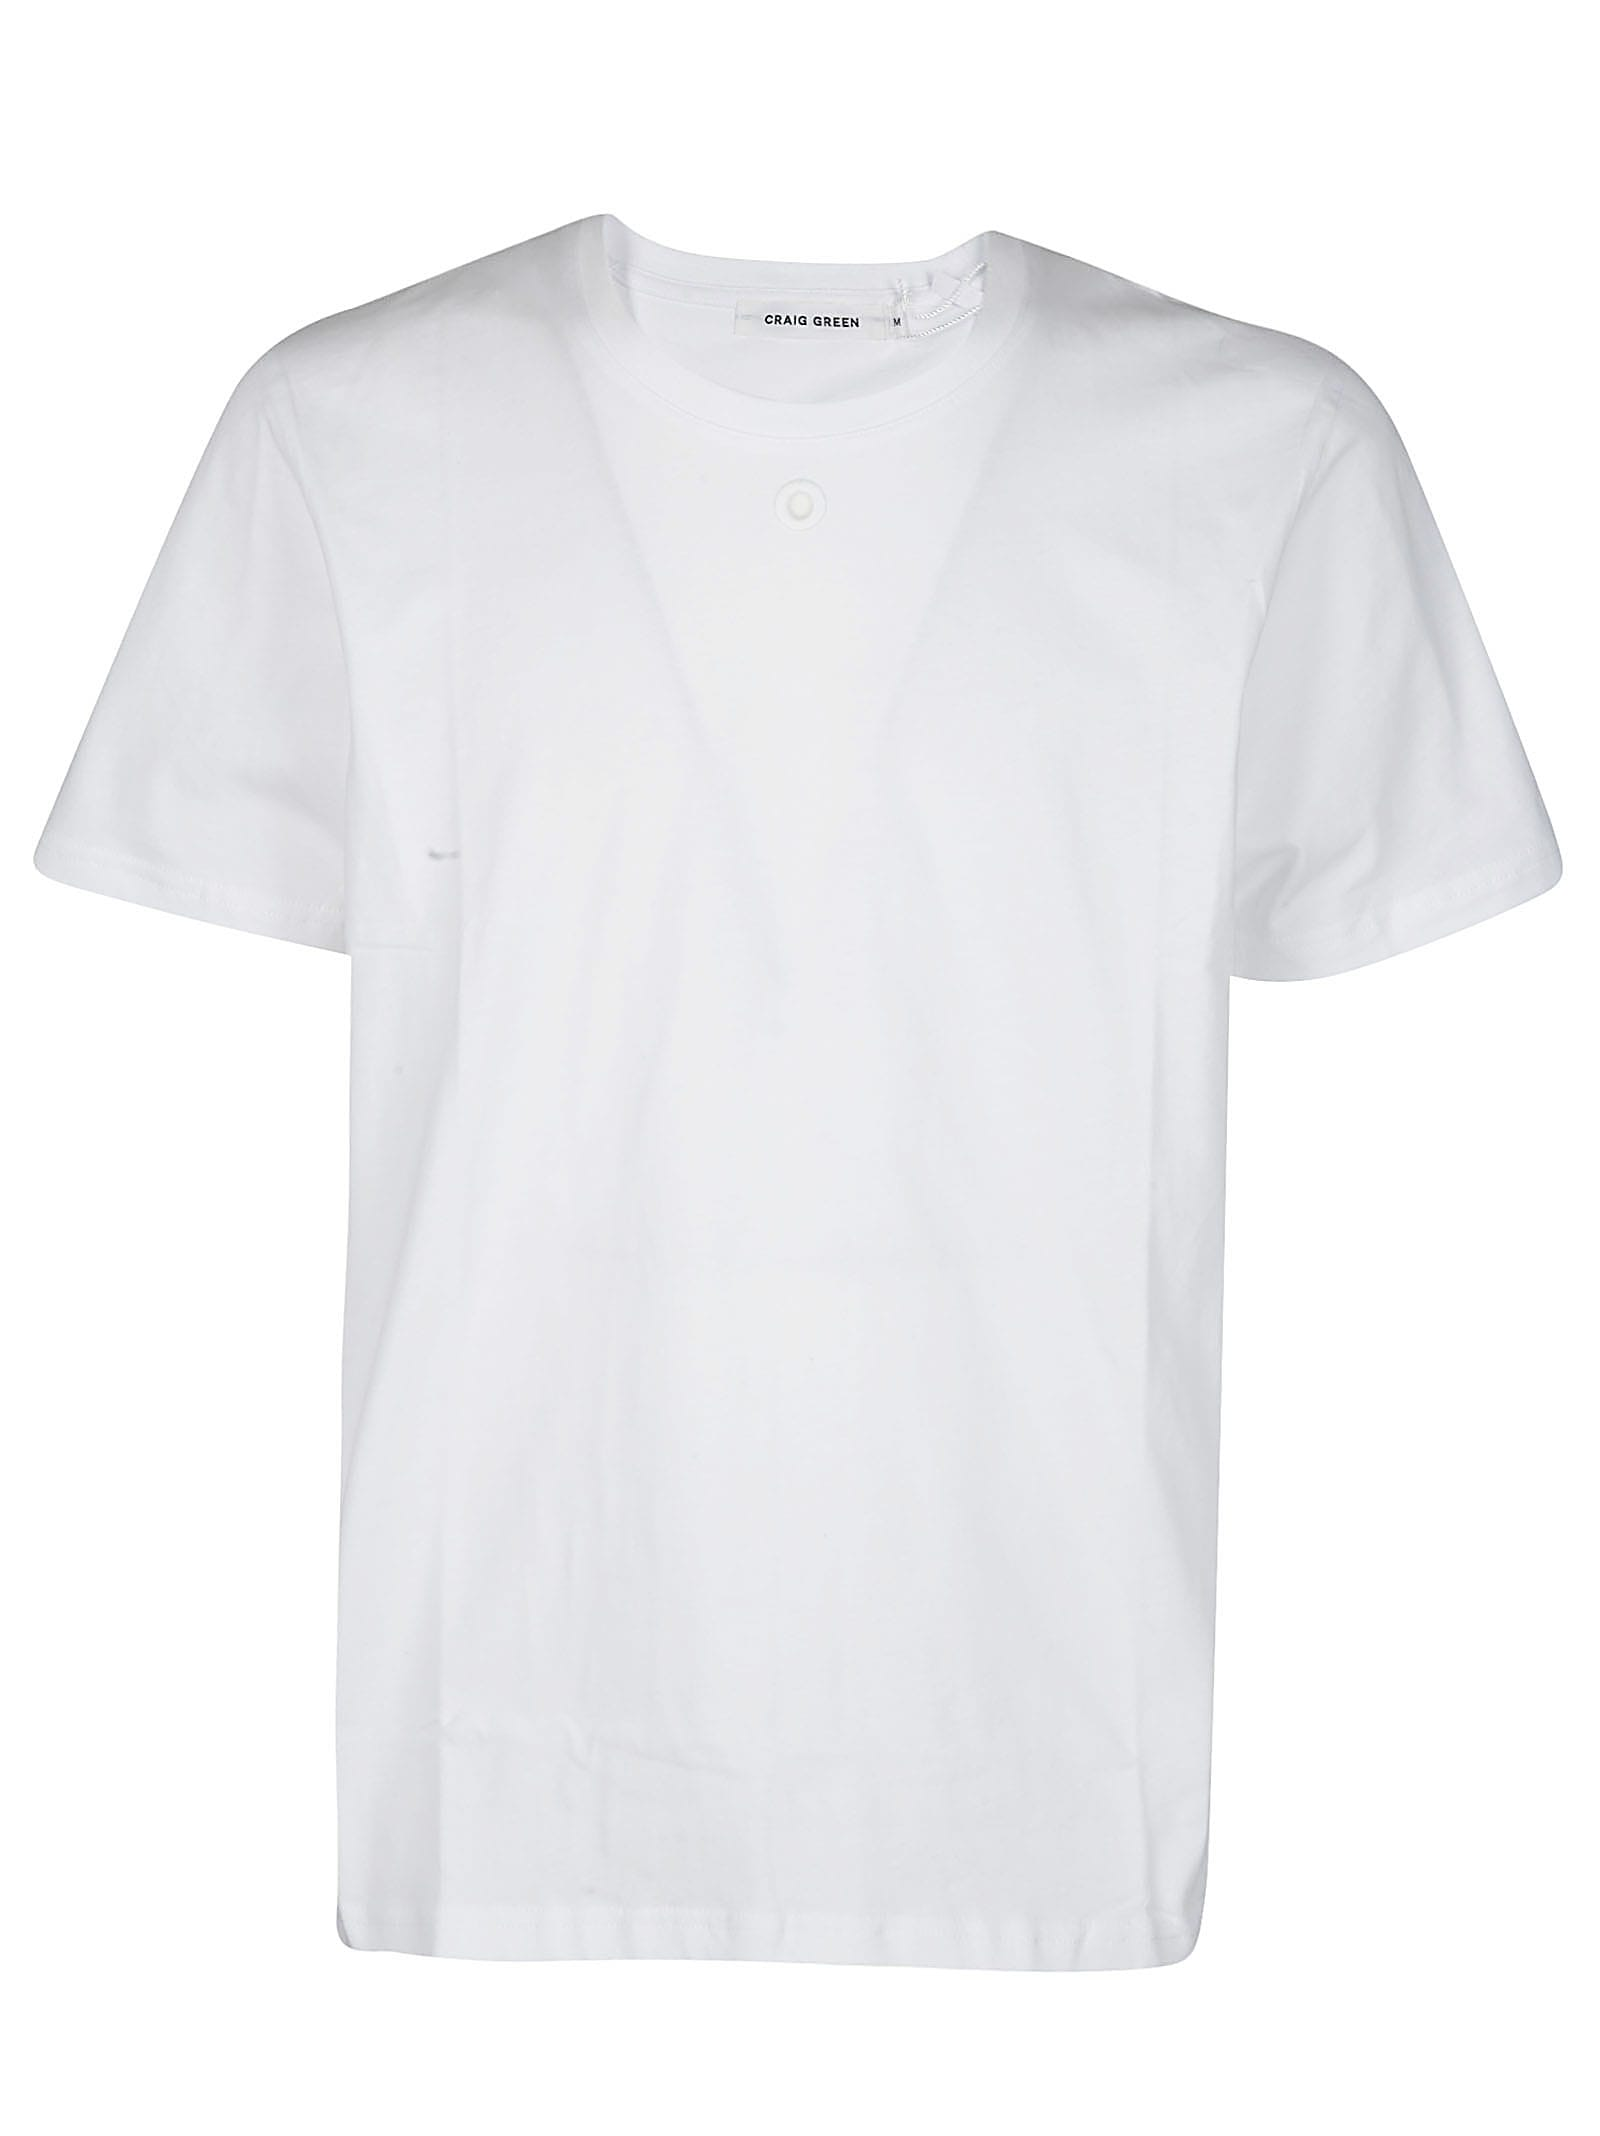 Craig Green White Cotton T-shirt